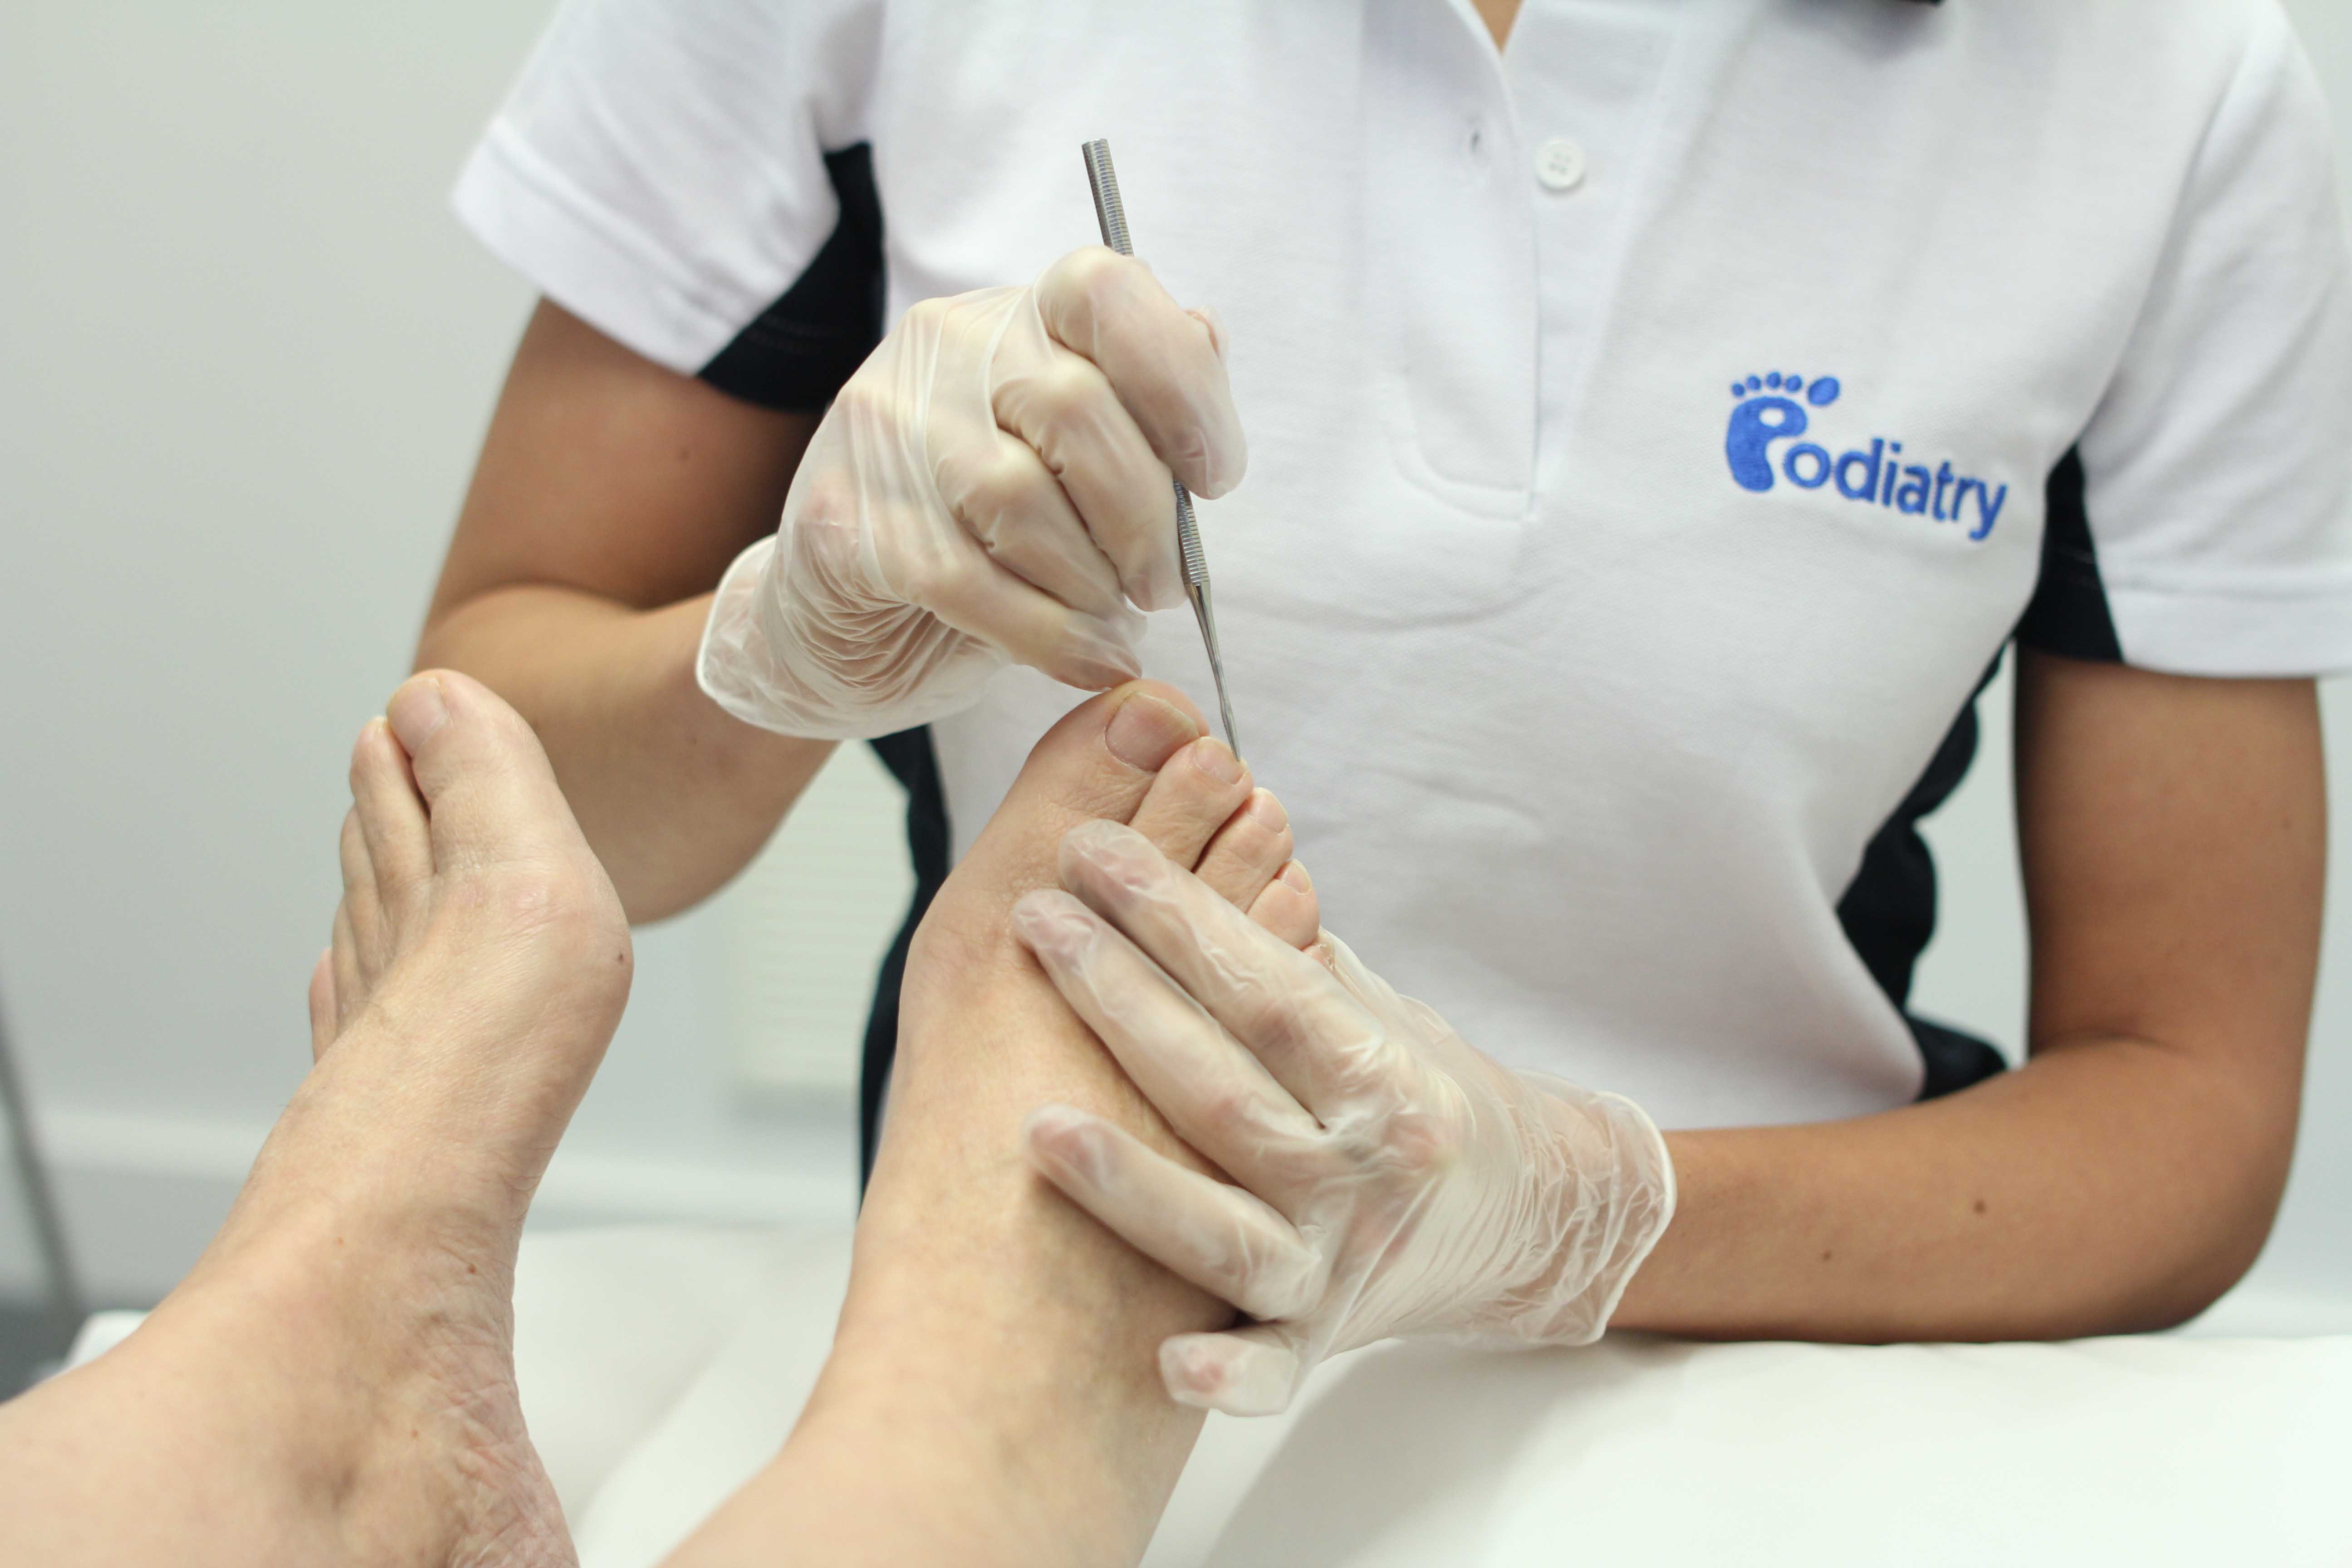 Podiatrist treating the dermal tissues around the affected nails